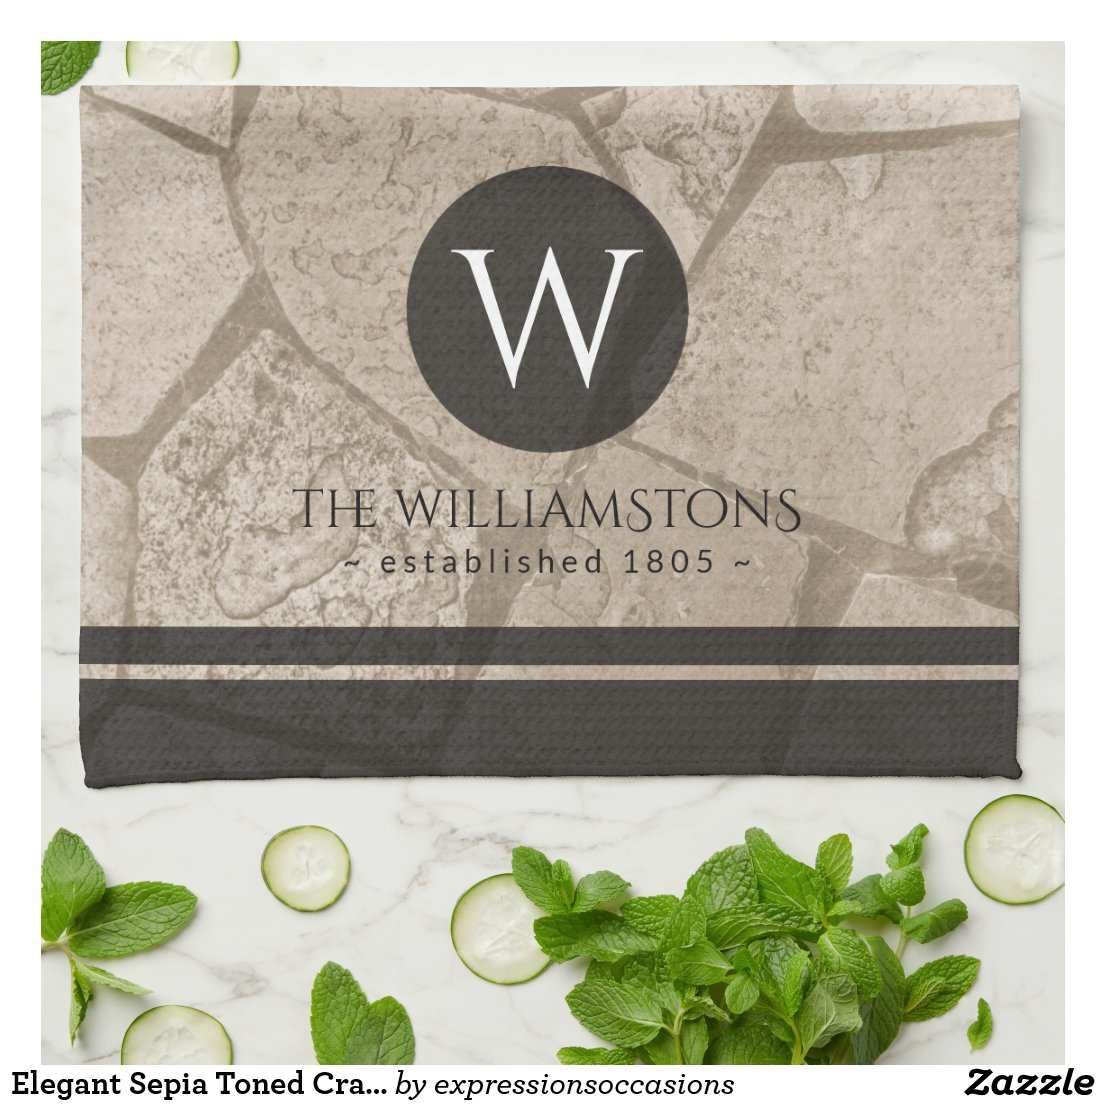 Elegant Sepia Toned Cracked Stones Tea Towel